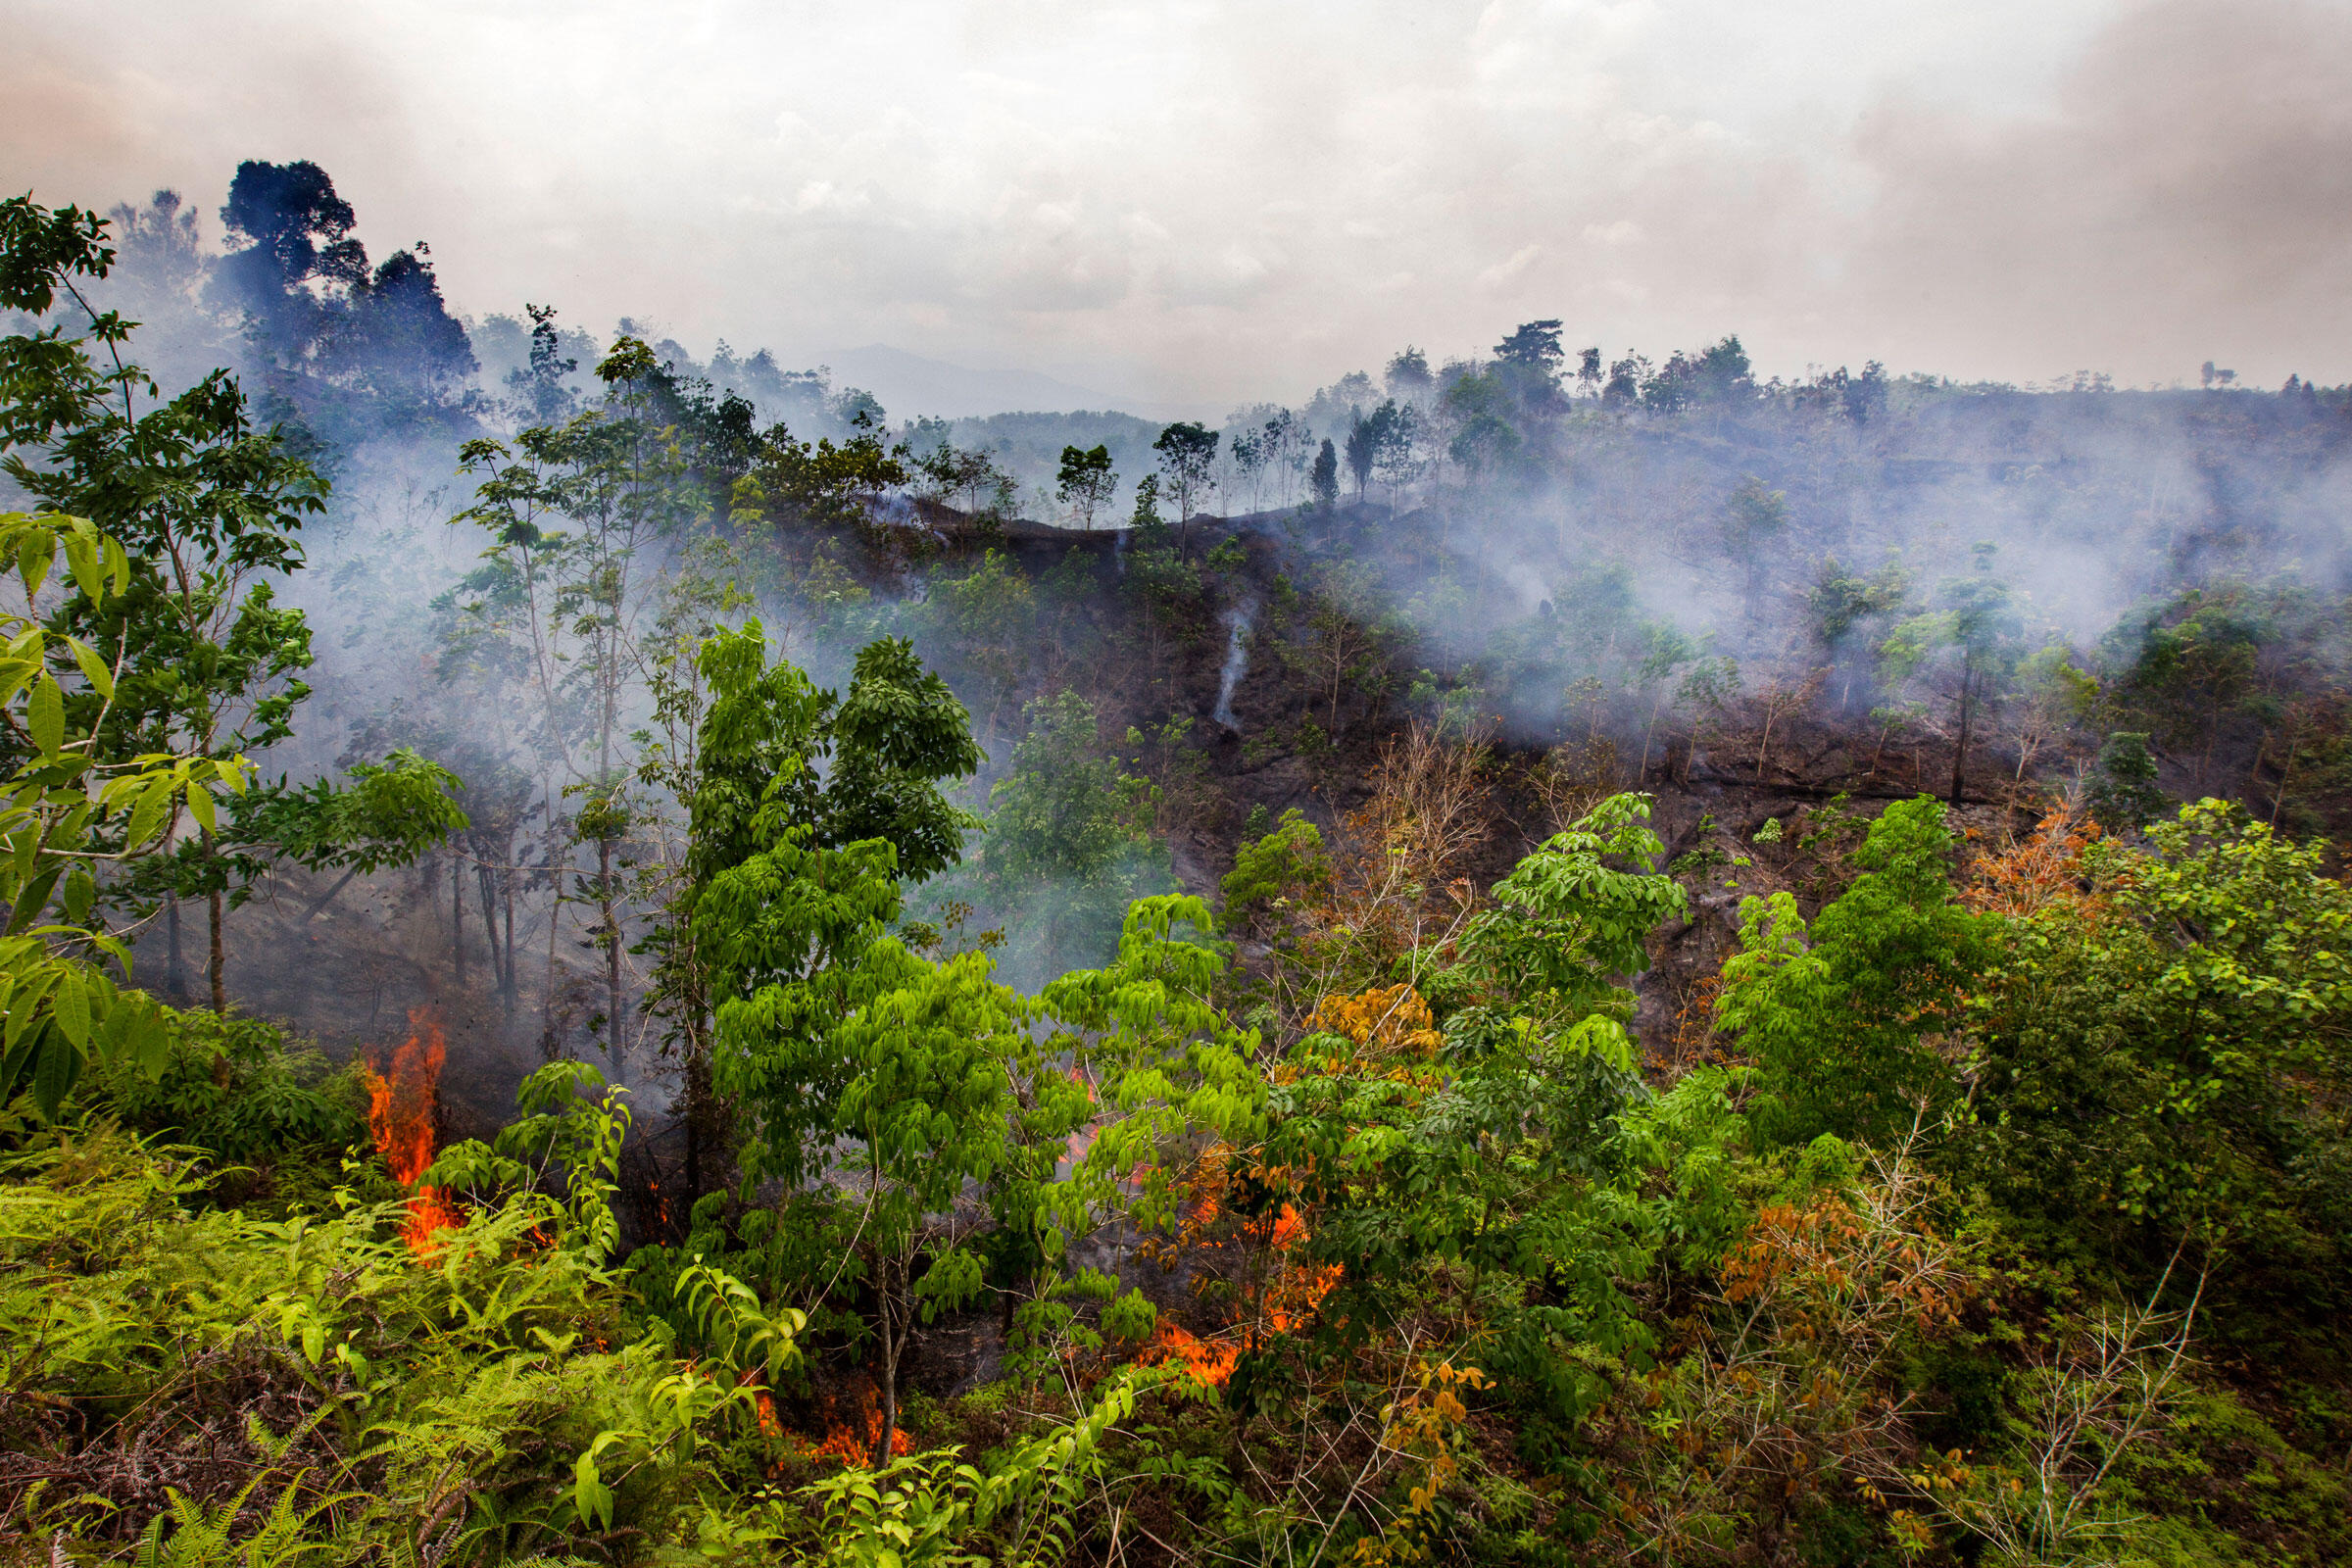 Over the next few decades, fires in palm forests may result in 200 billion tons of CO2 being released into the atmosphere. Paul Hilton